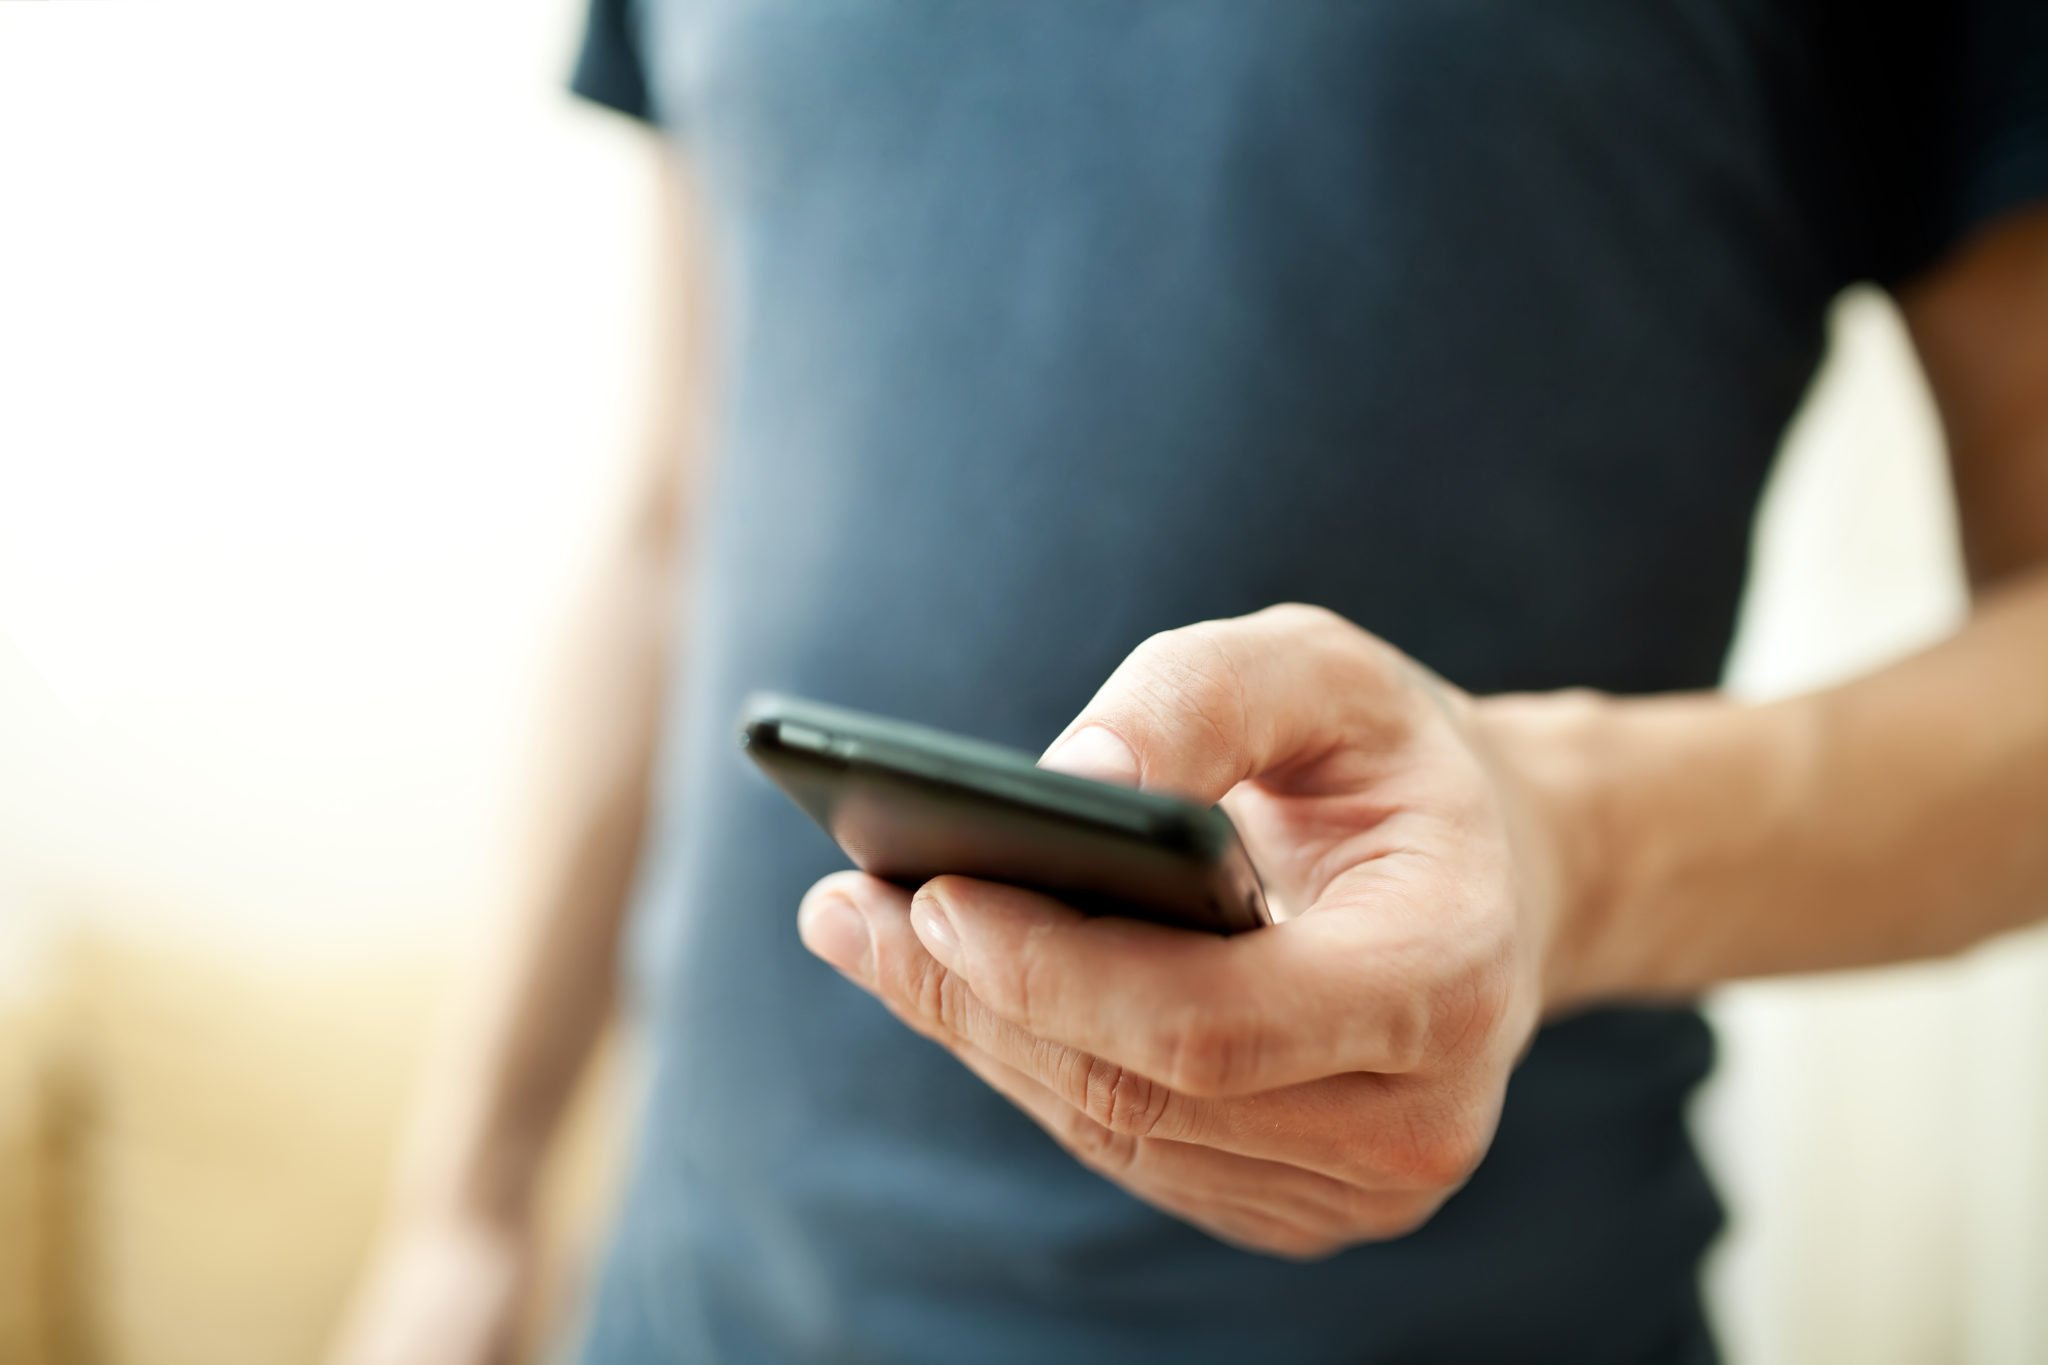 ComScore data shows growing importance of mobile in real estate search